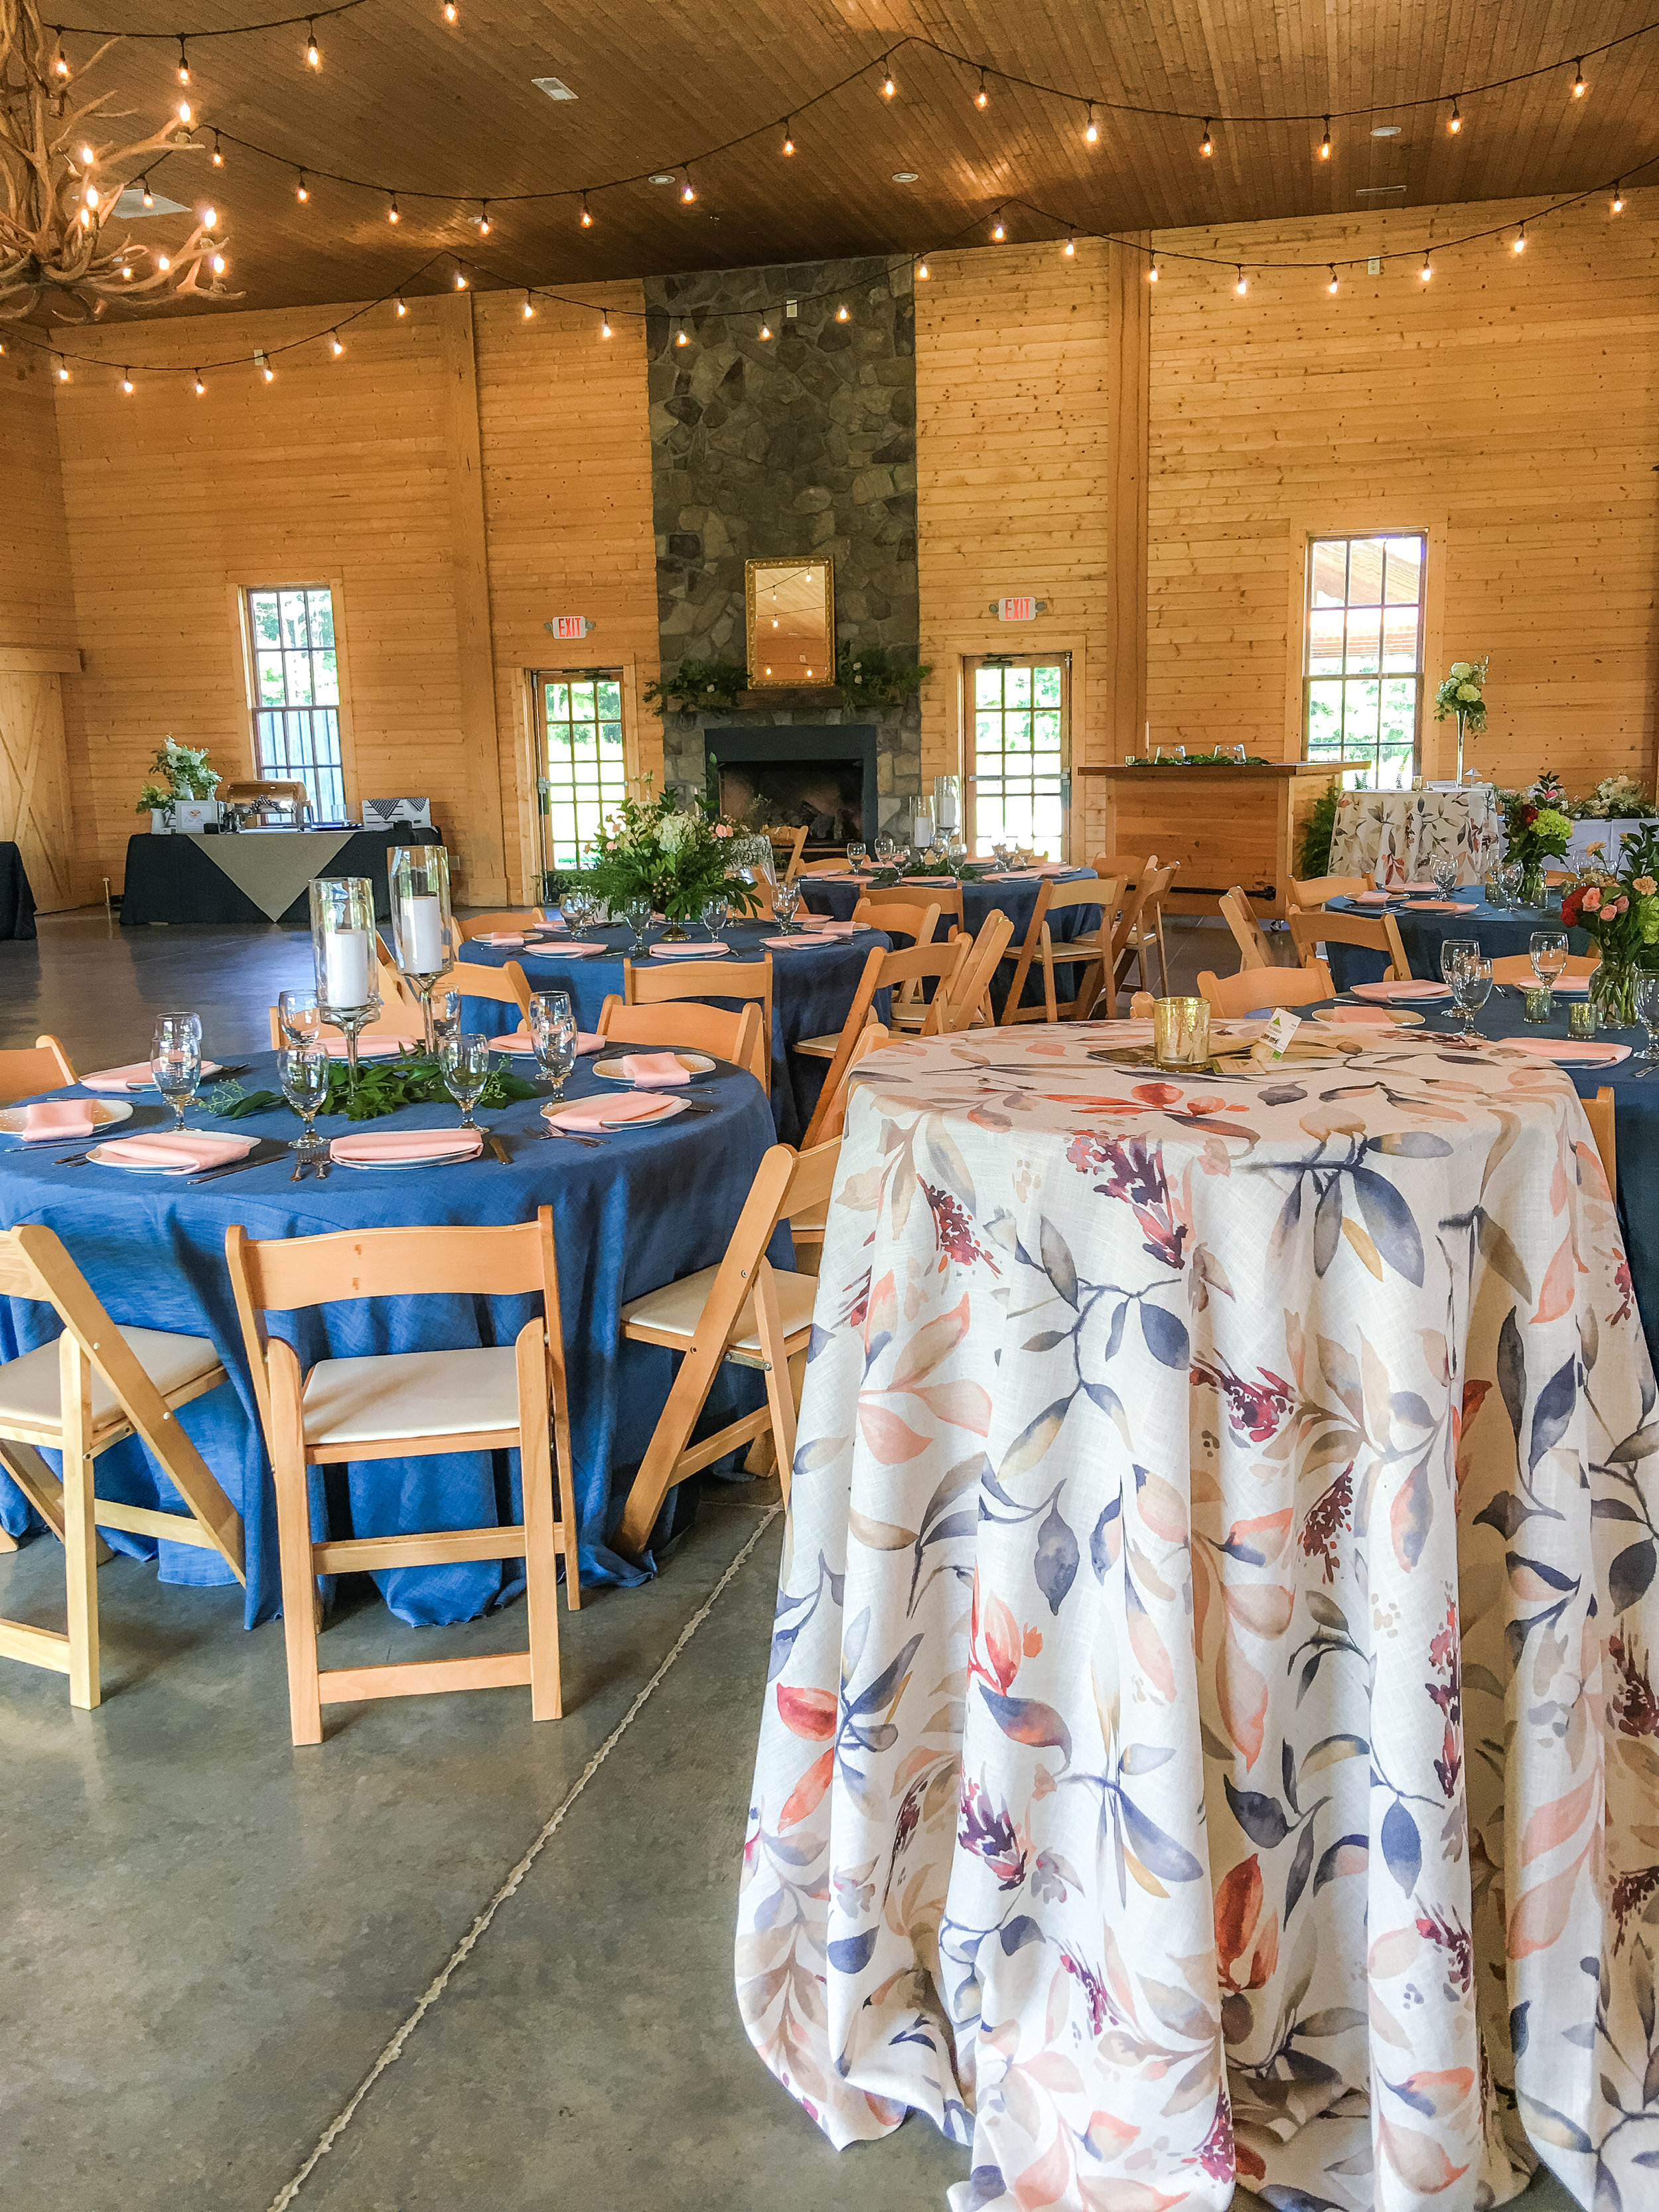 Linen Rental from Party Reflections